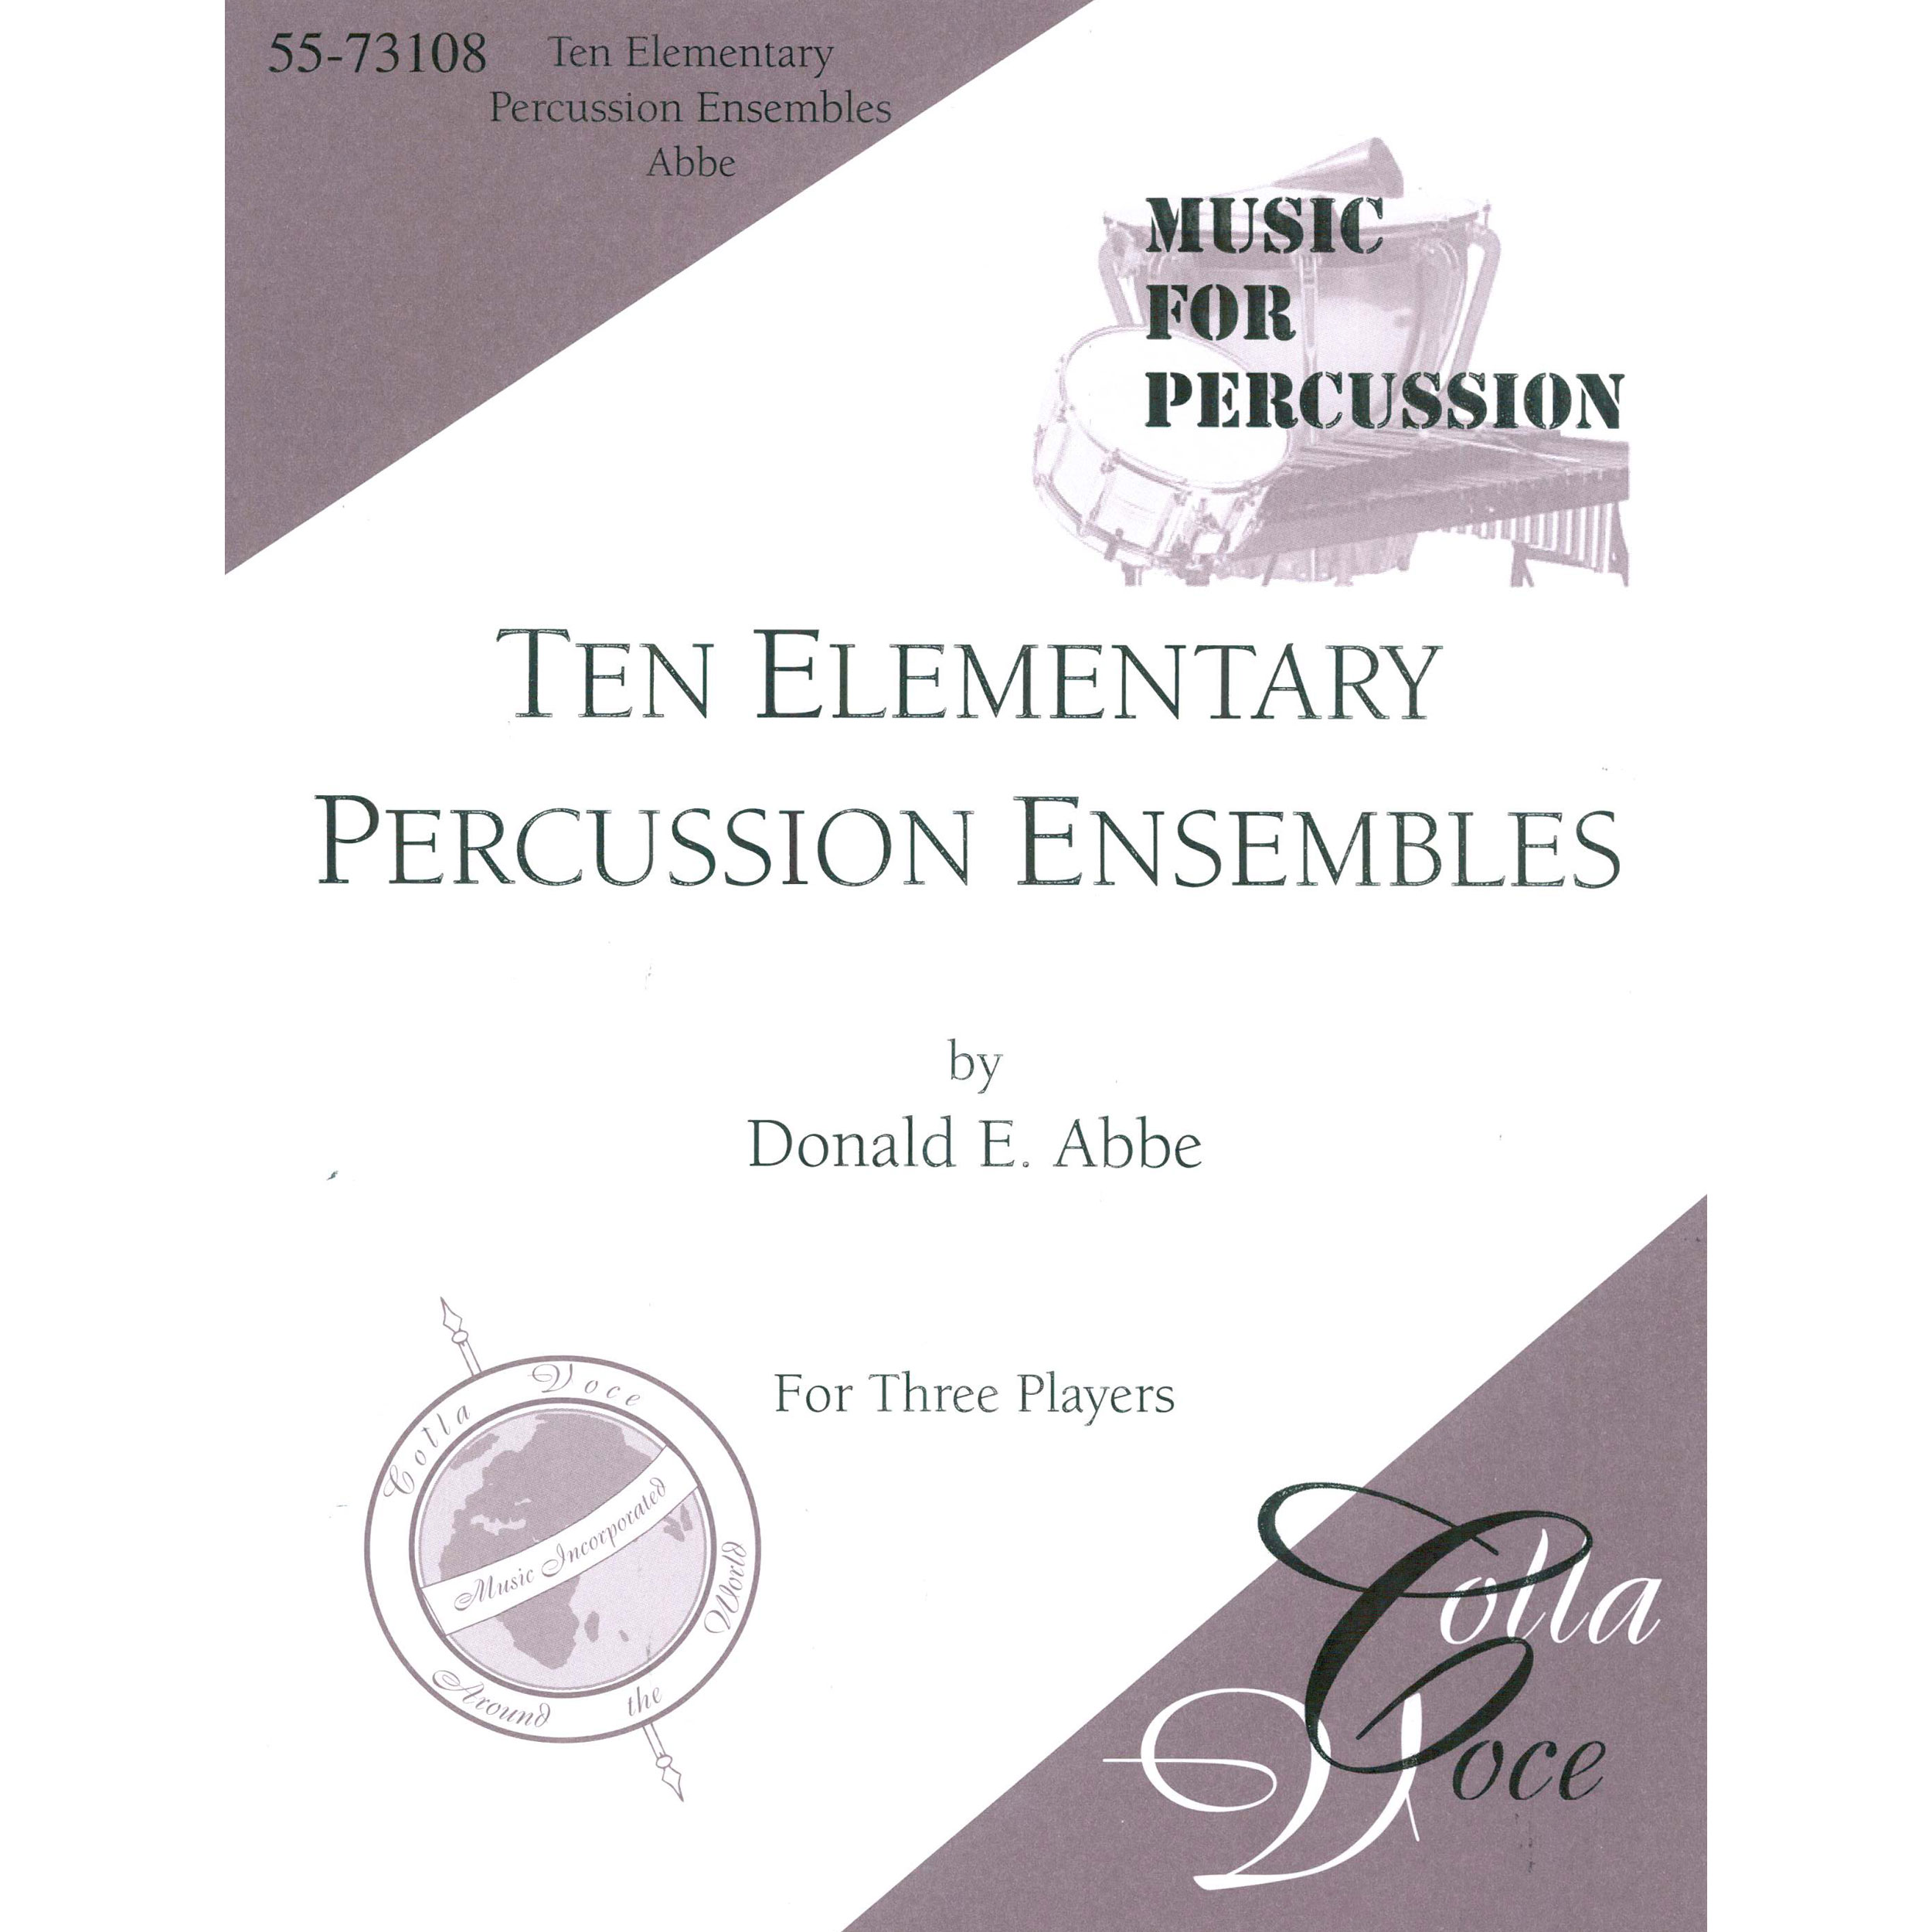 Ten Elementary Percussion Ensembles by Donald Abbe